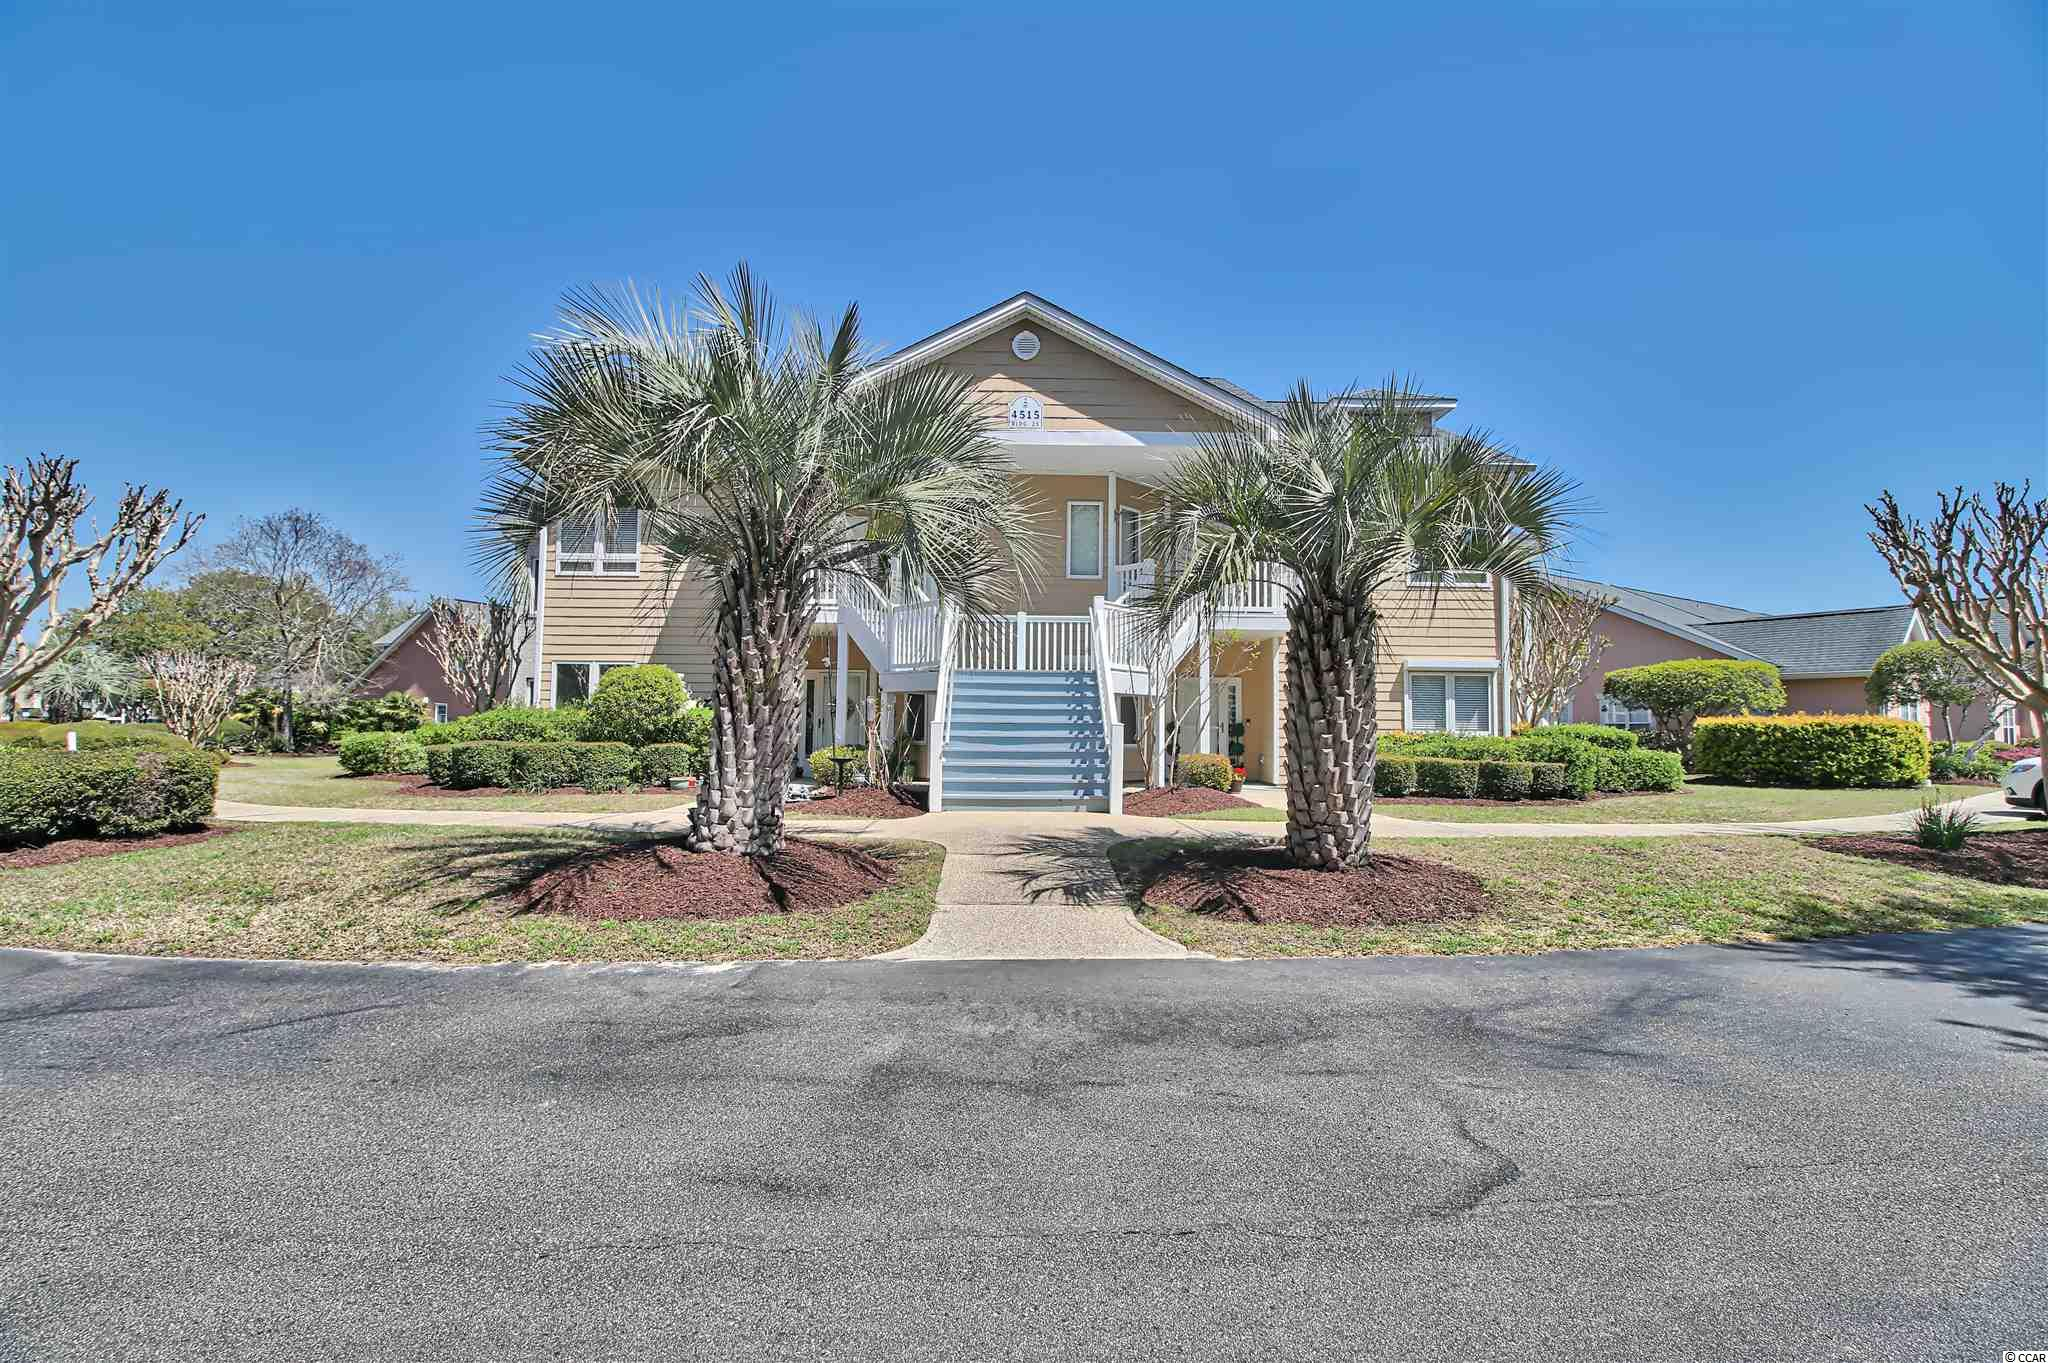 This highly desirable end unit in Lighthouse Pointe at Lightkeepers Village is a spacious three bedroom, two bath unit in ICW Community.   Large screened porch and patio face a large lagoon and the lighthouse in the distance.  Unit has upgrades since purchase in 2016.  New roof and new gutters installed June and July 2021.  New HVAC in 2016 as well as paint and new laminate flooring.  Ceiling fans have been installed in all living spaces as well as porch and patio.  Three bedrooms and two baths offer plenty of space, ample closet storage plus two linen closets. Additional storage cabinet added to kitchen. Large marina and boardwalk adjacent to community.  Walk to Lighthouse,  Clark's Restaurant or the Officers Club (membership required).  Owner is a SC Realtor.